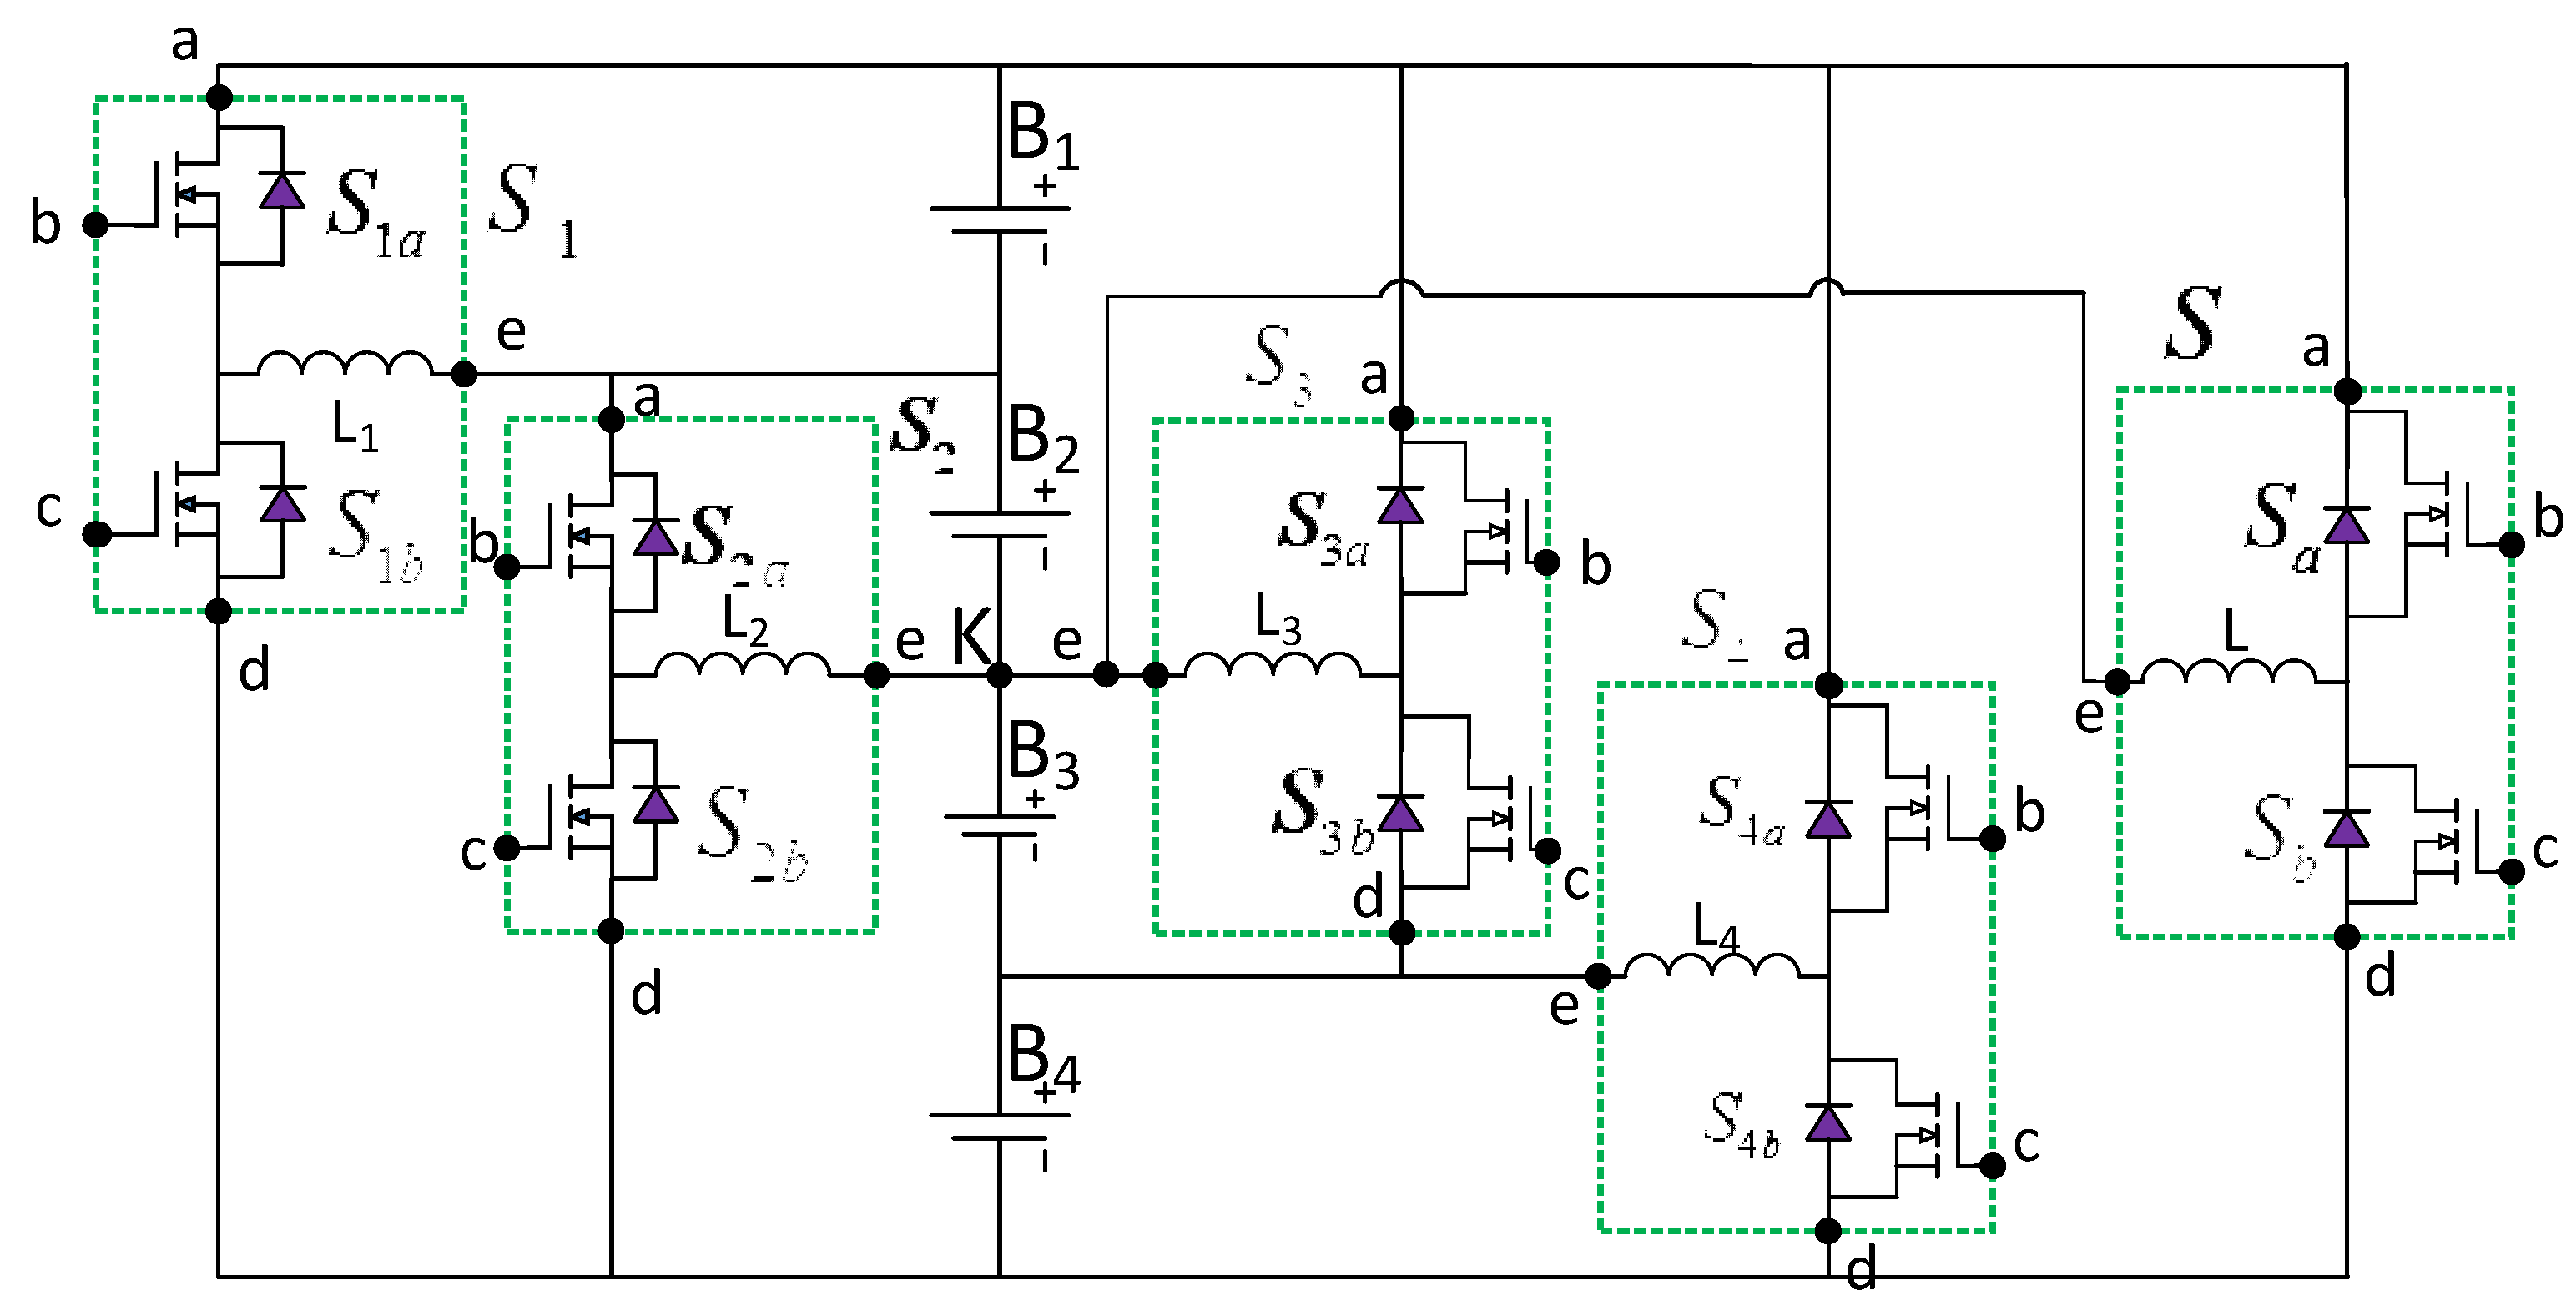 Energies Free Full Text Research On A Novel Power Inductor Based Schematic Diagram Simulated Circuit 08 05555 G002 1024 Figure 2